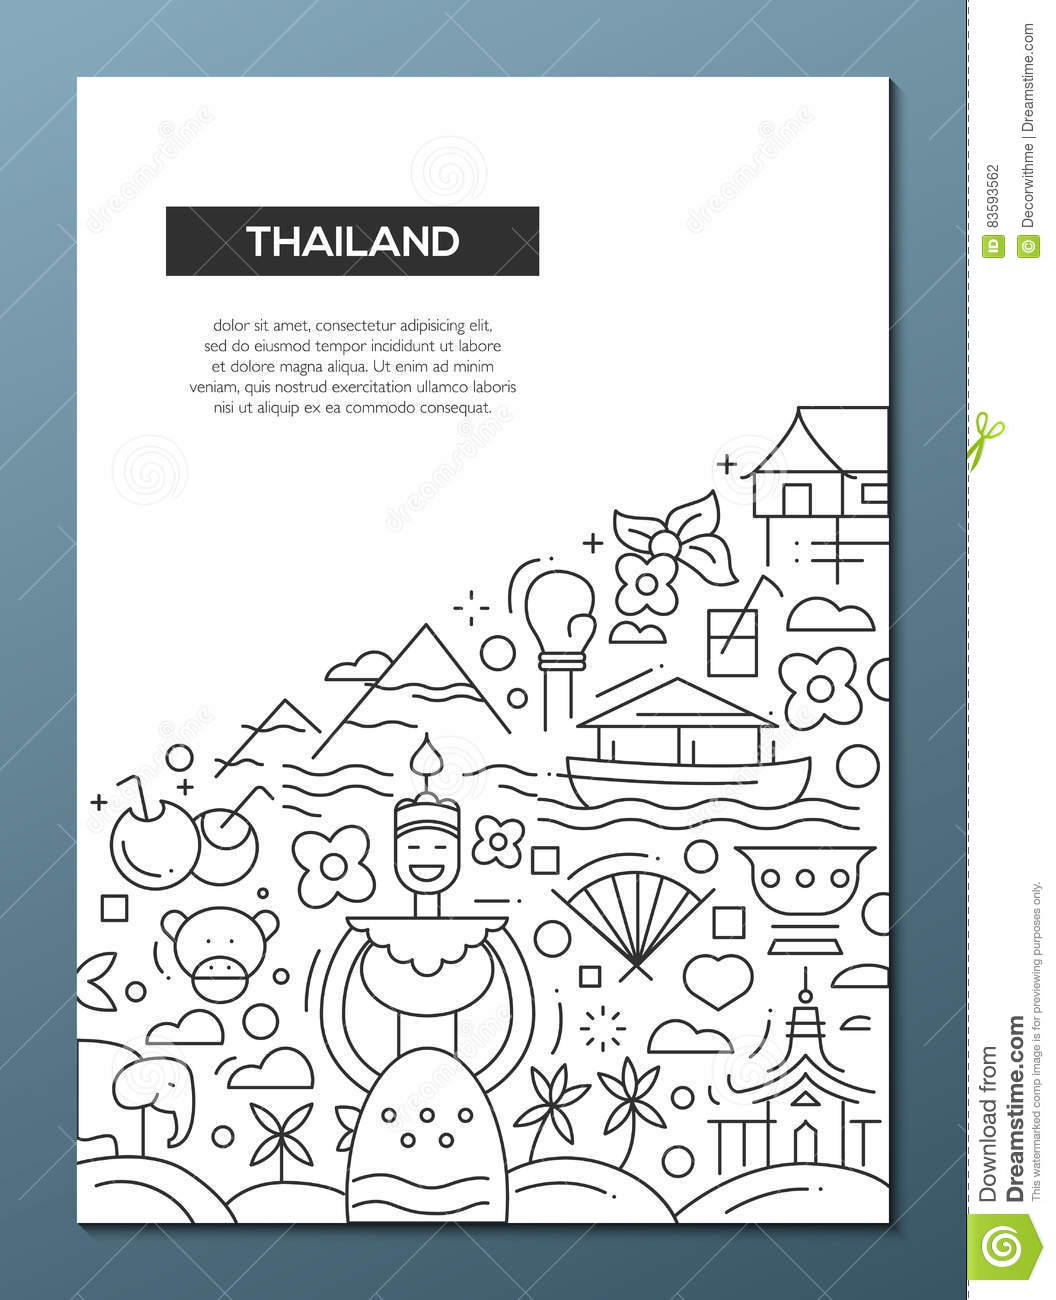 Welcome To Thailand - Line Design Brochure Poster Template A4 Stock